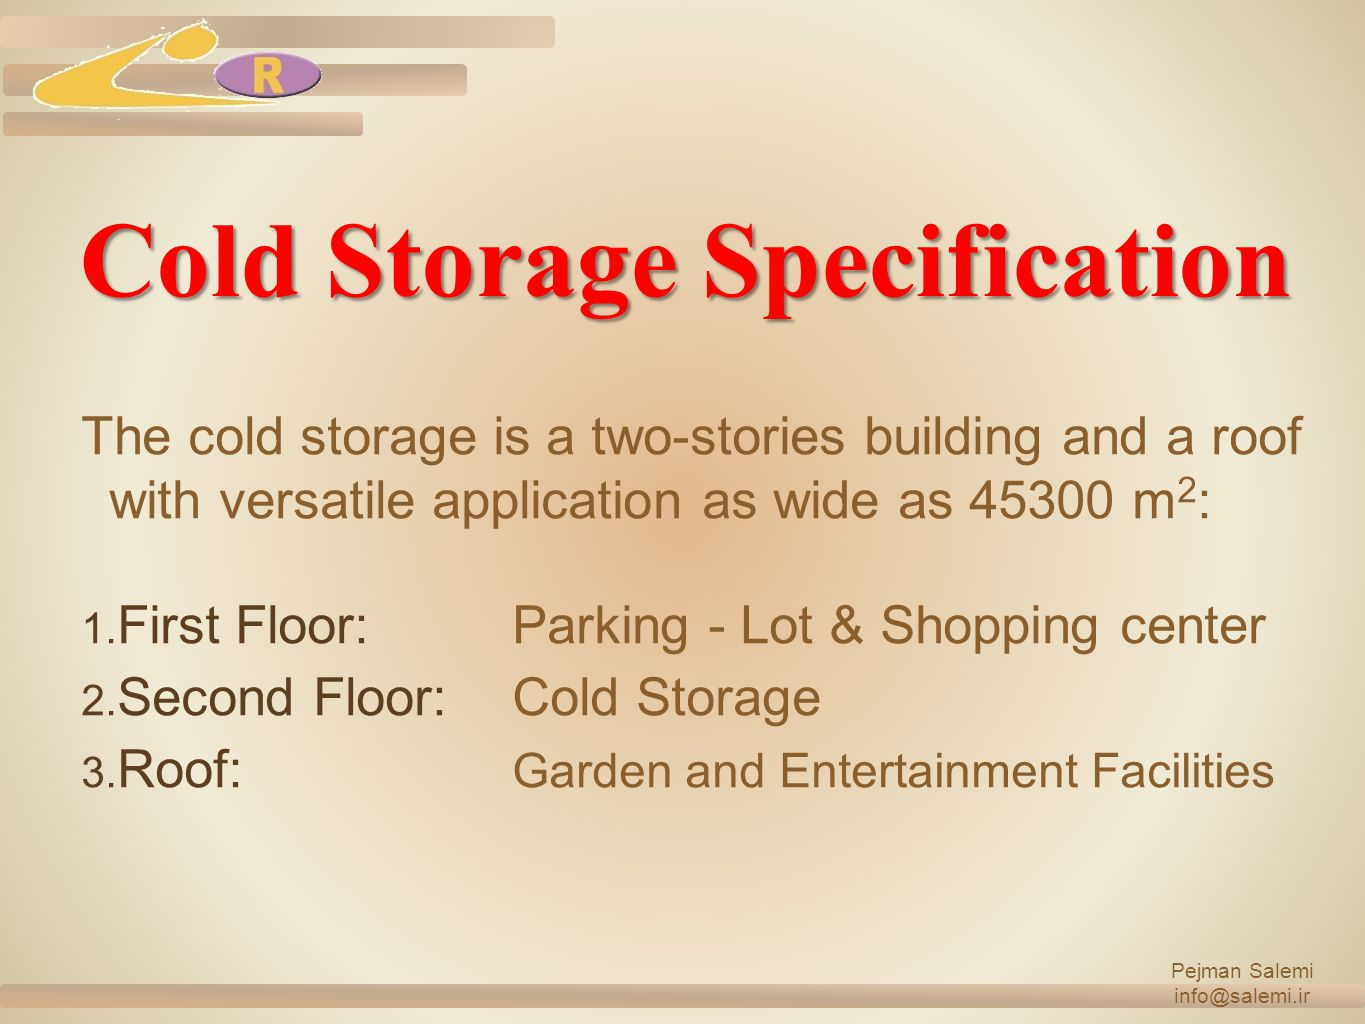 Cold Storage Specification